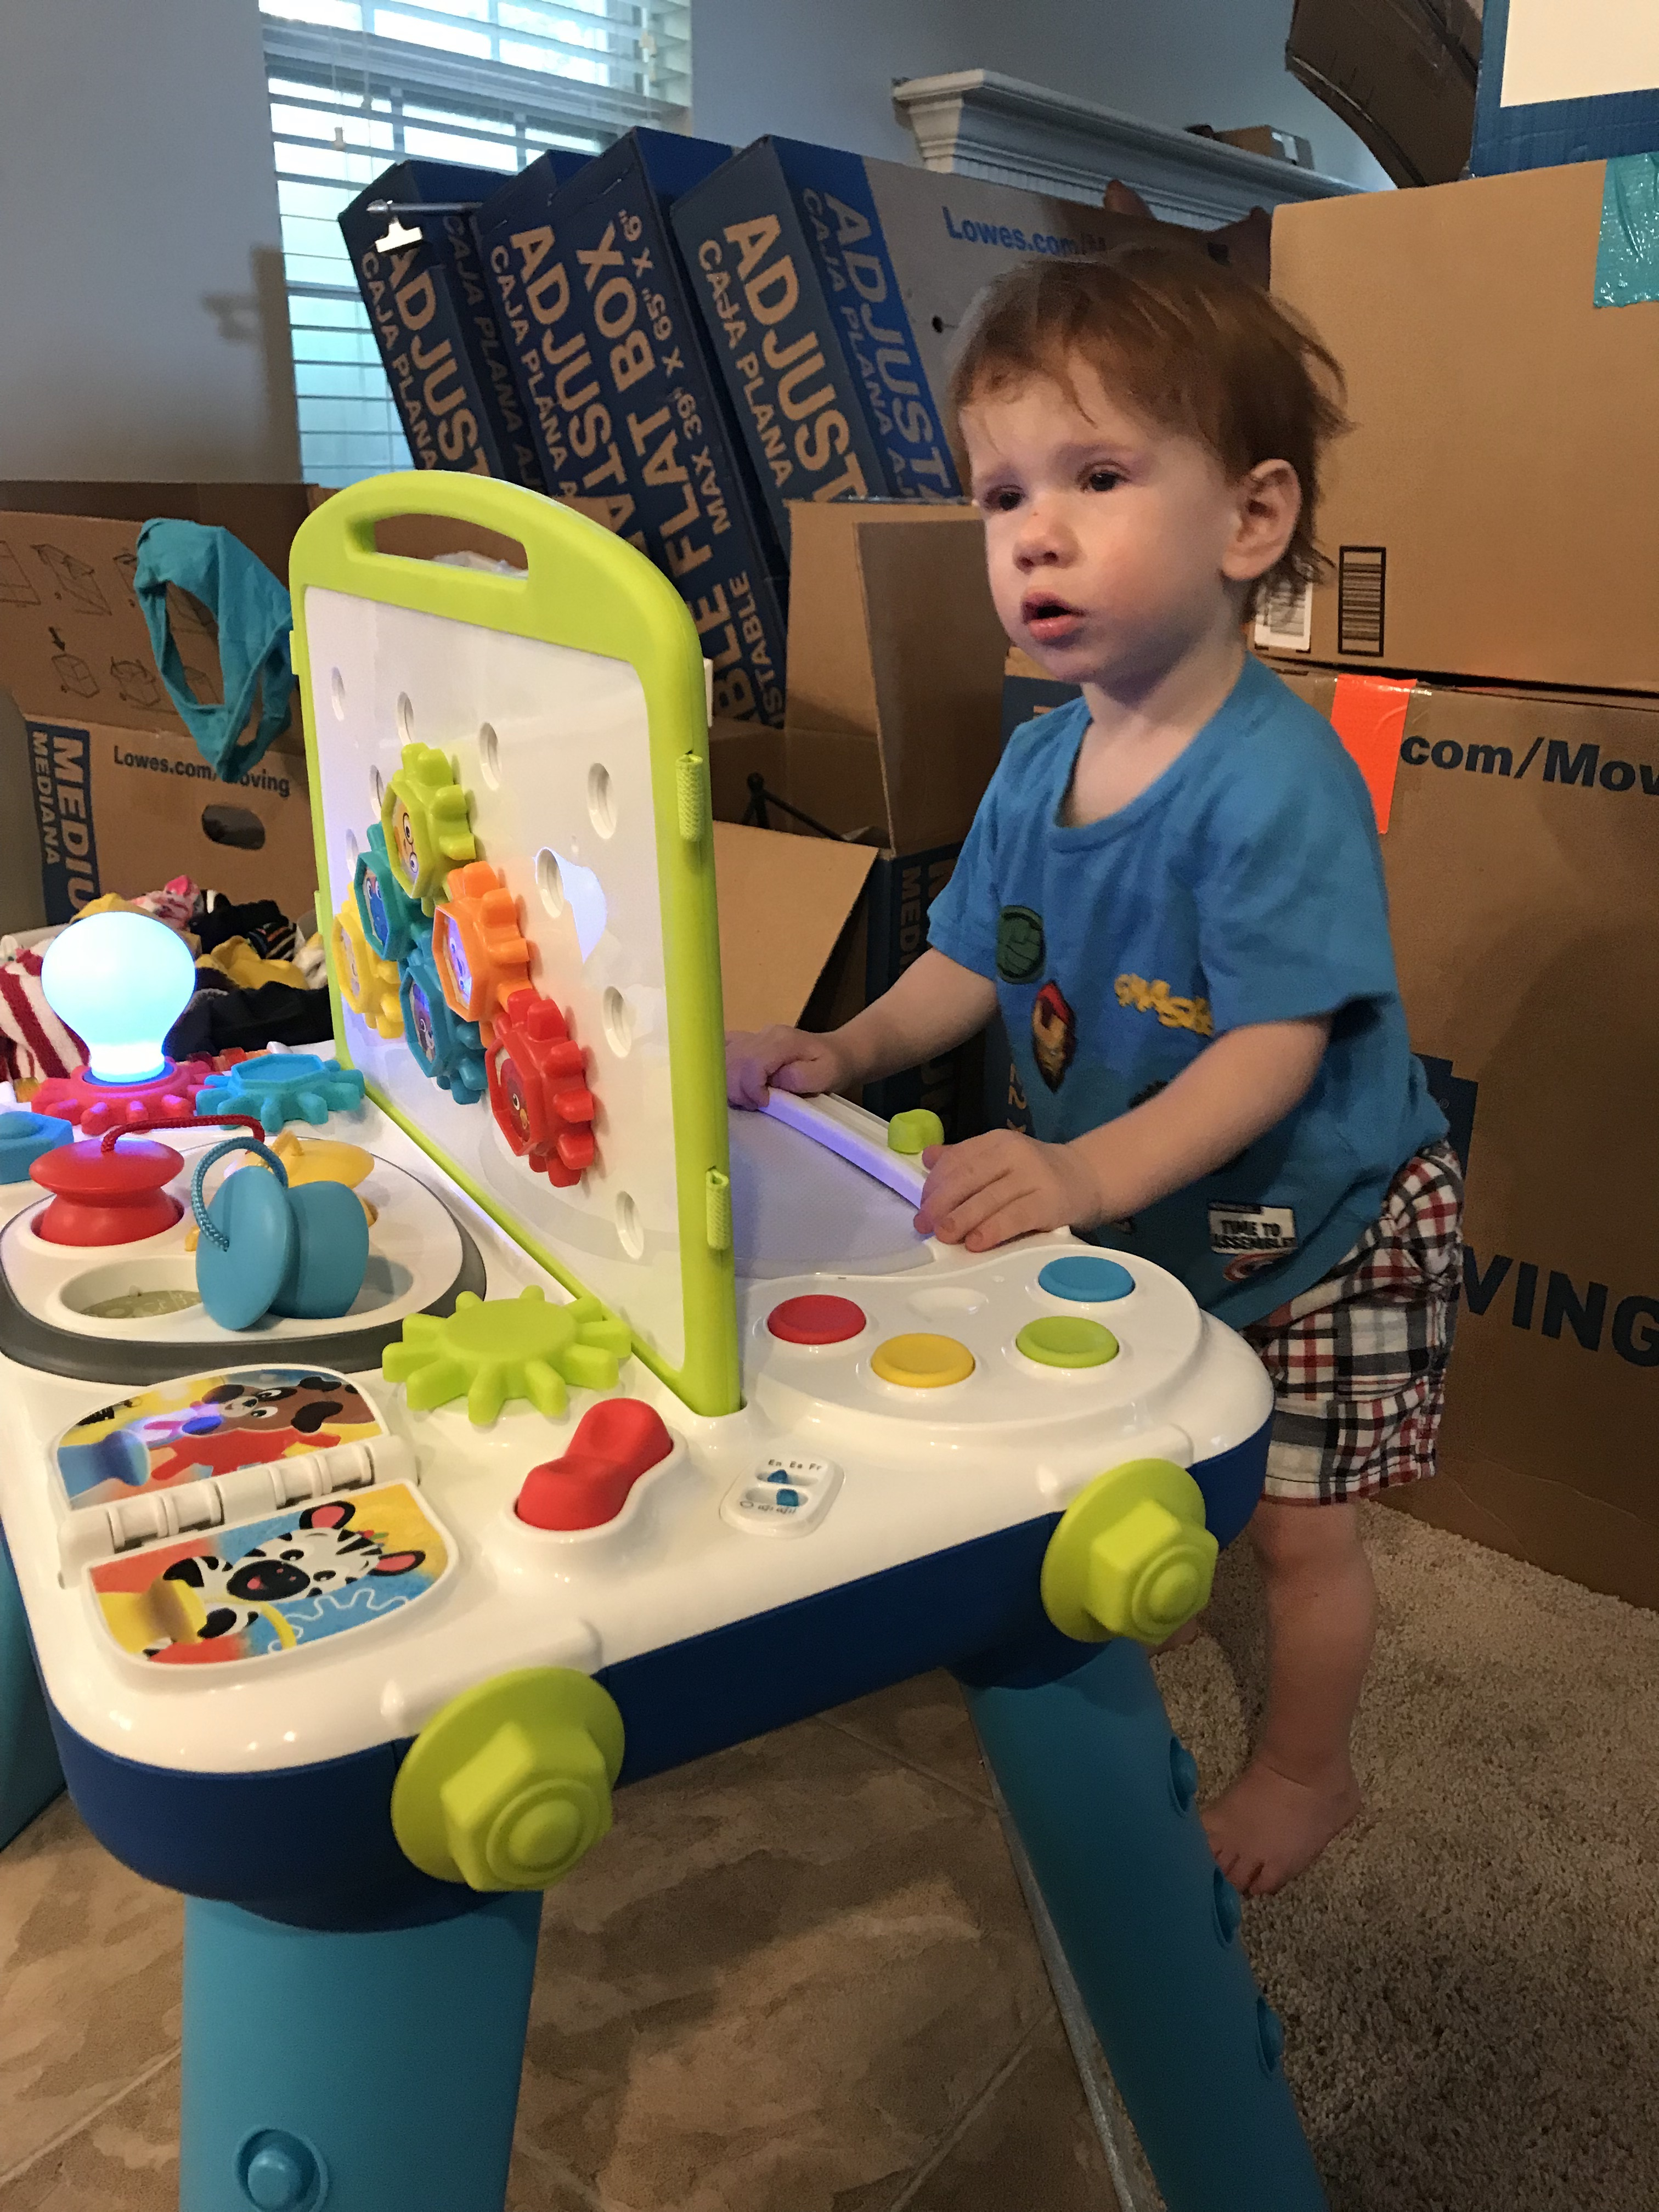 Entertaining toddlers during a move can be quite the challenge. This post will give some great tips to make it work!